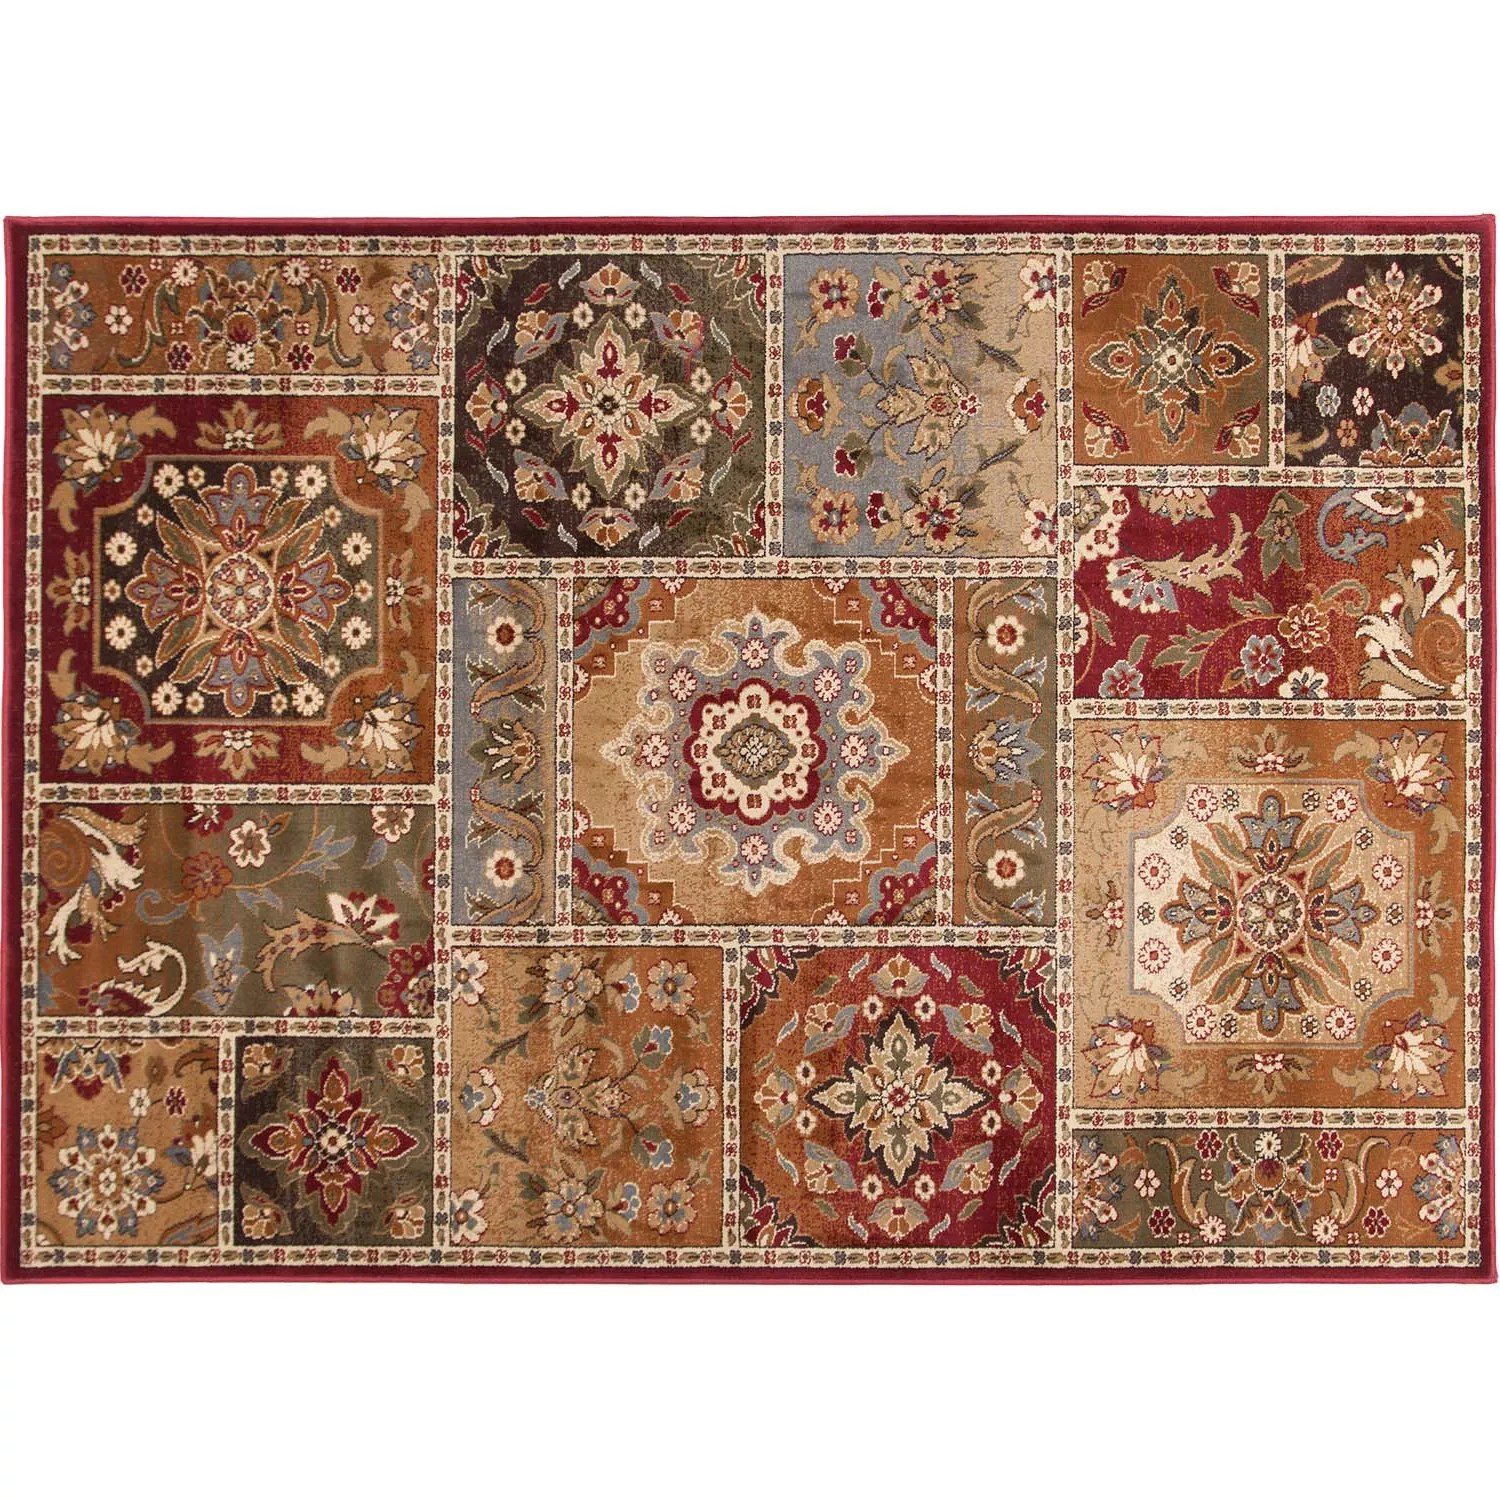 Khl Rugs Transitional Patchwork Rug